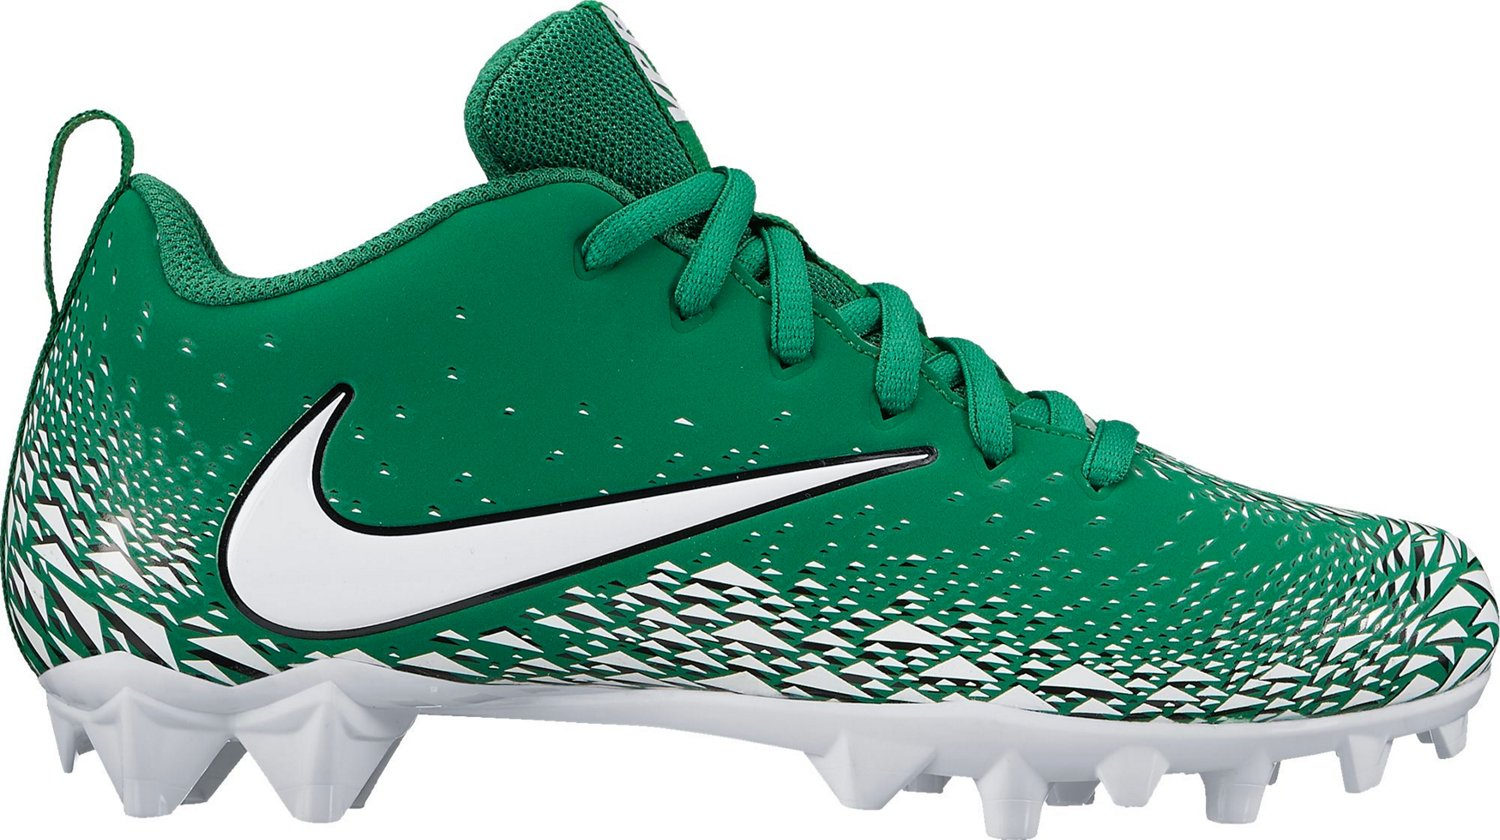 e6c754a7fa65 Boys' Football Cleats | Youth Football Cleats, Football Cleats For Boys |  Academy